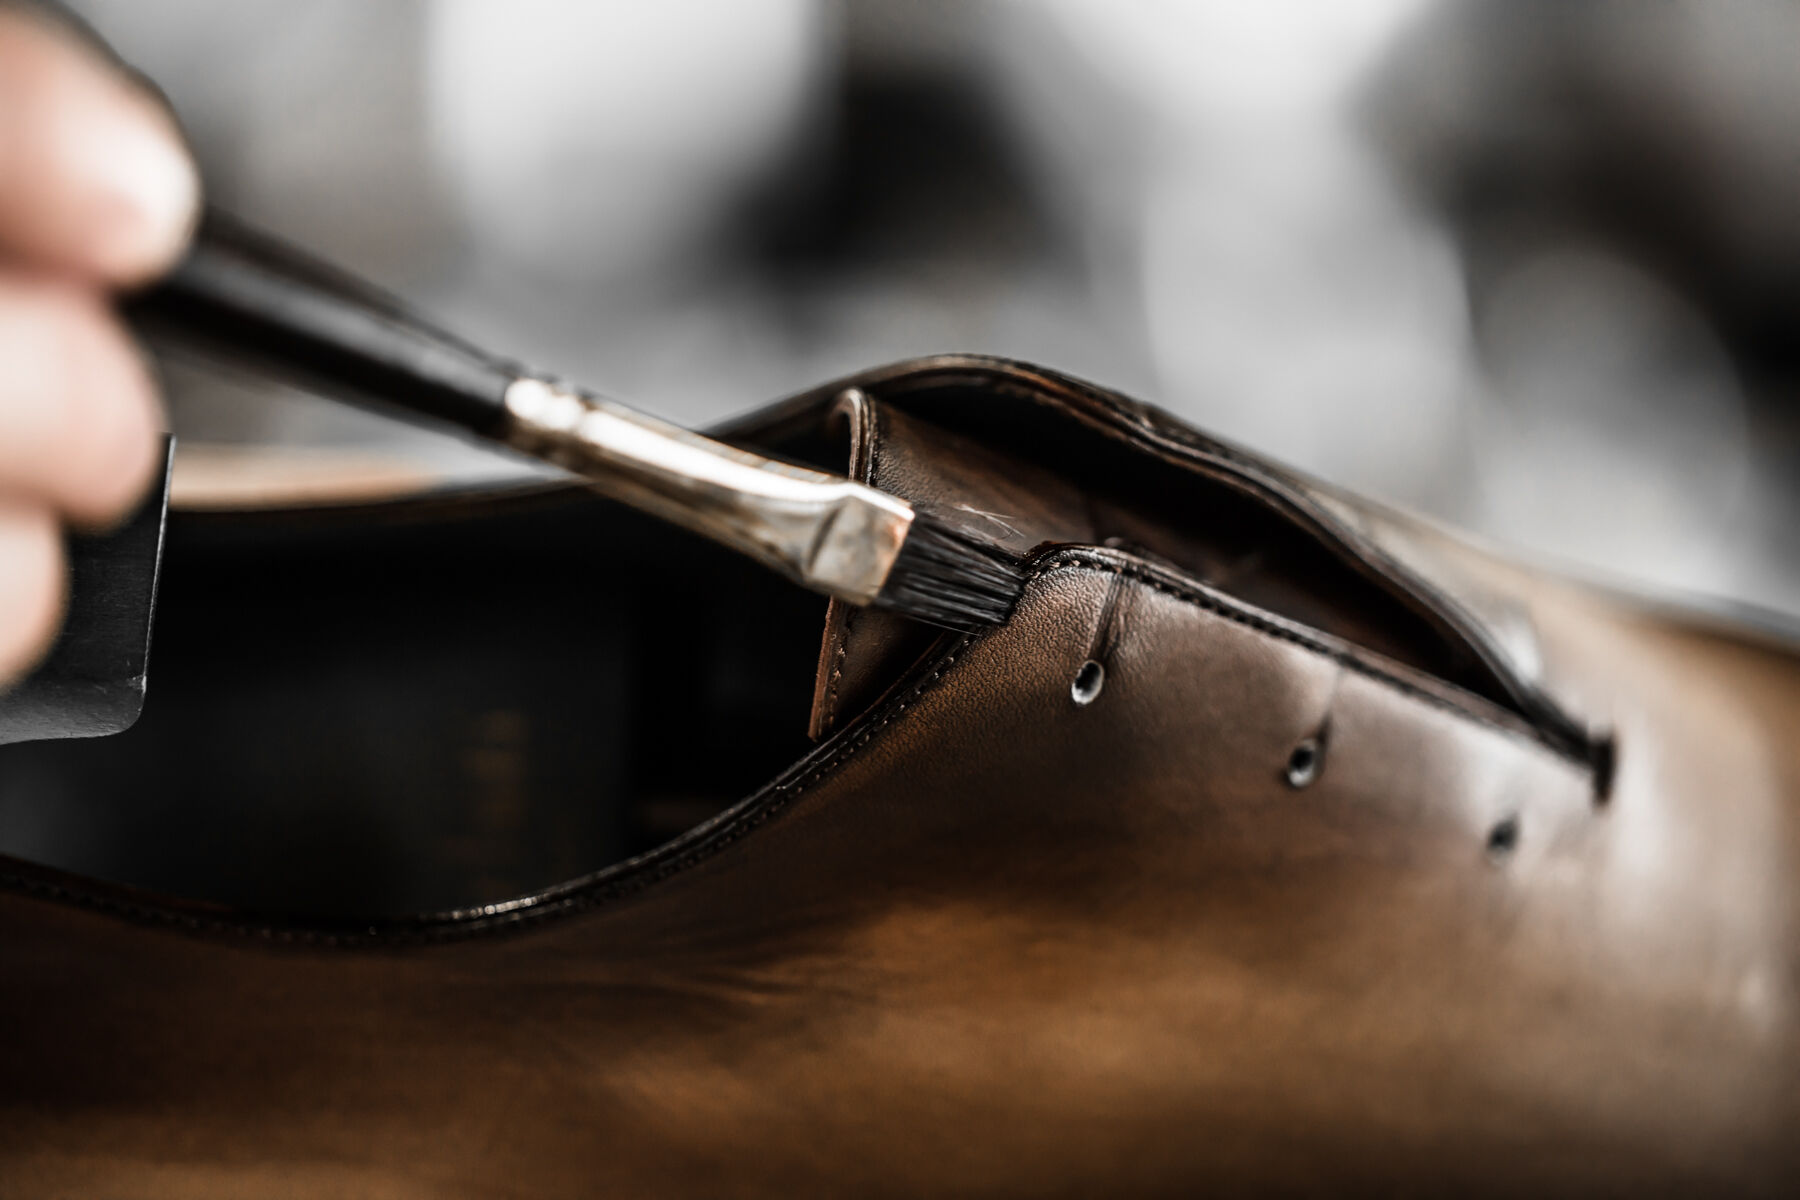 : When should you bring in shoes for their first patina?